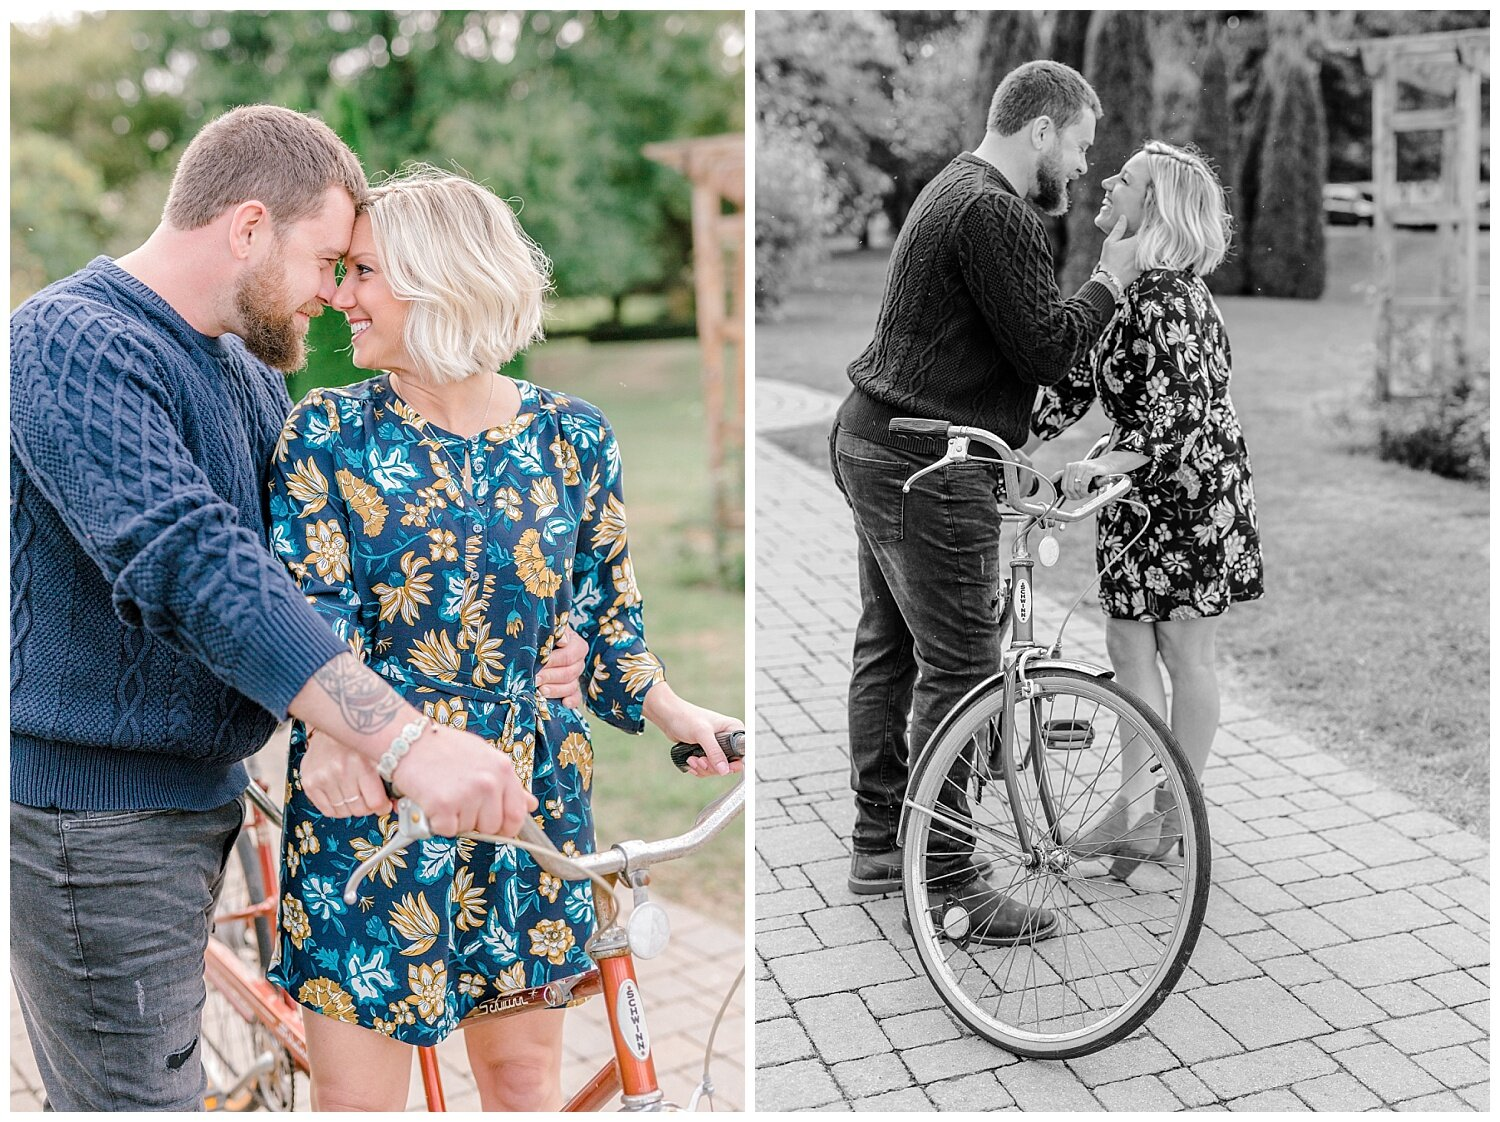 Allentown rose garden sunset engagement session with a tandem bike by lehigh valley pennsylvania based wedding and lifestyle photographer Jeannie Lytle of Lytle Photography Company_0004.jpg